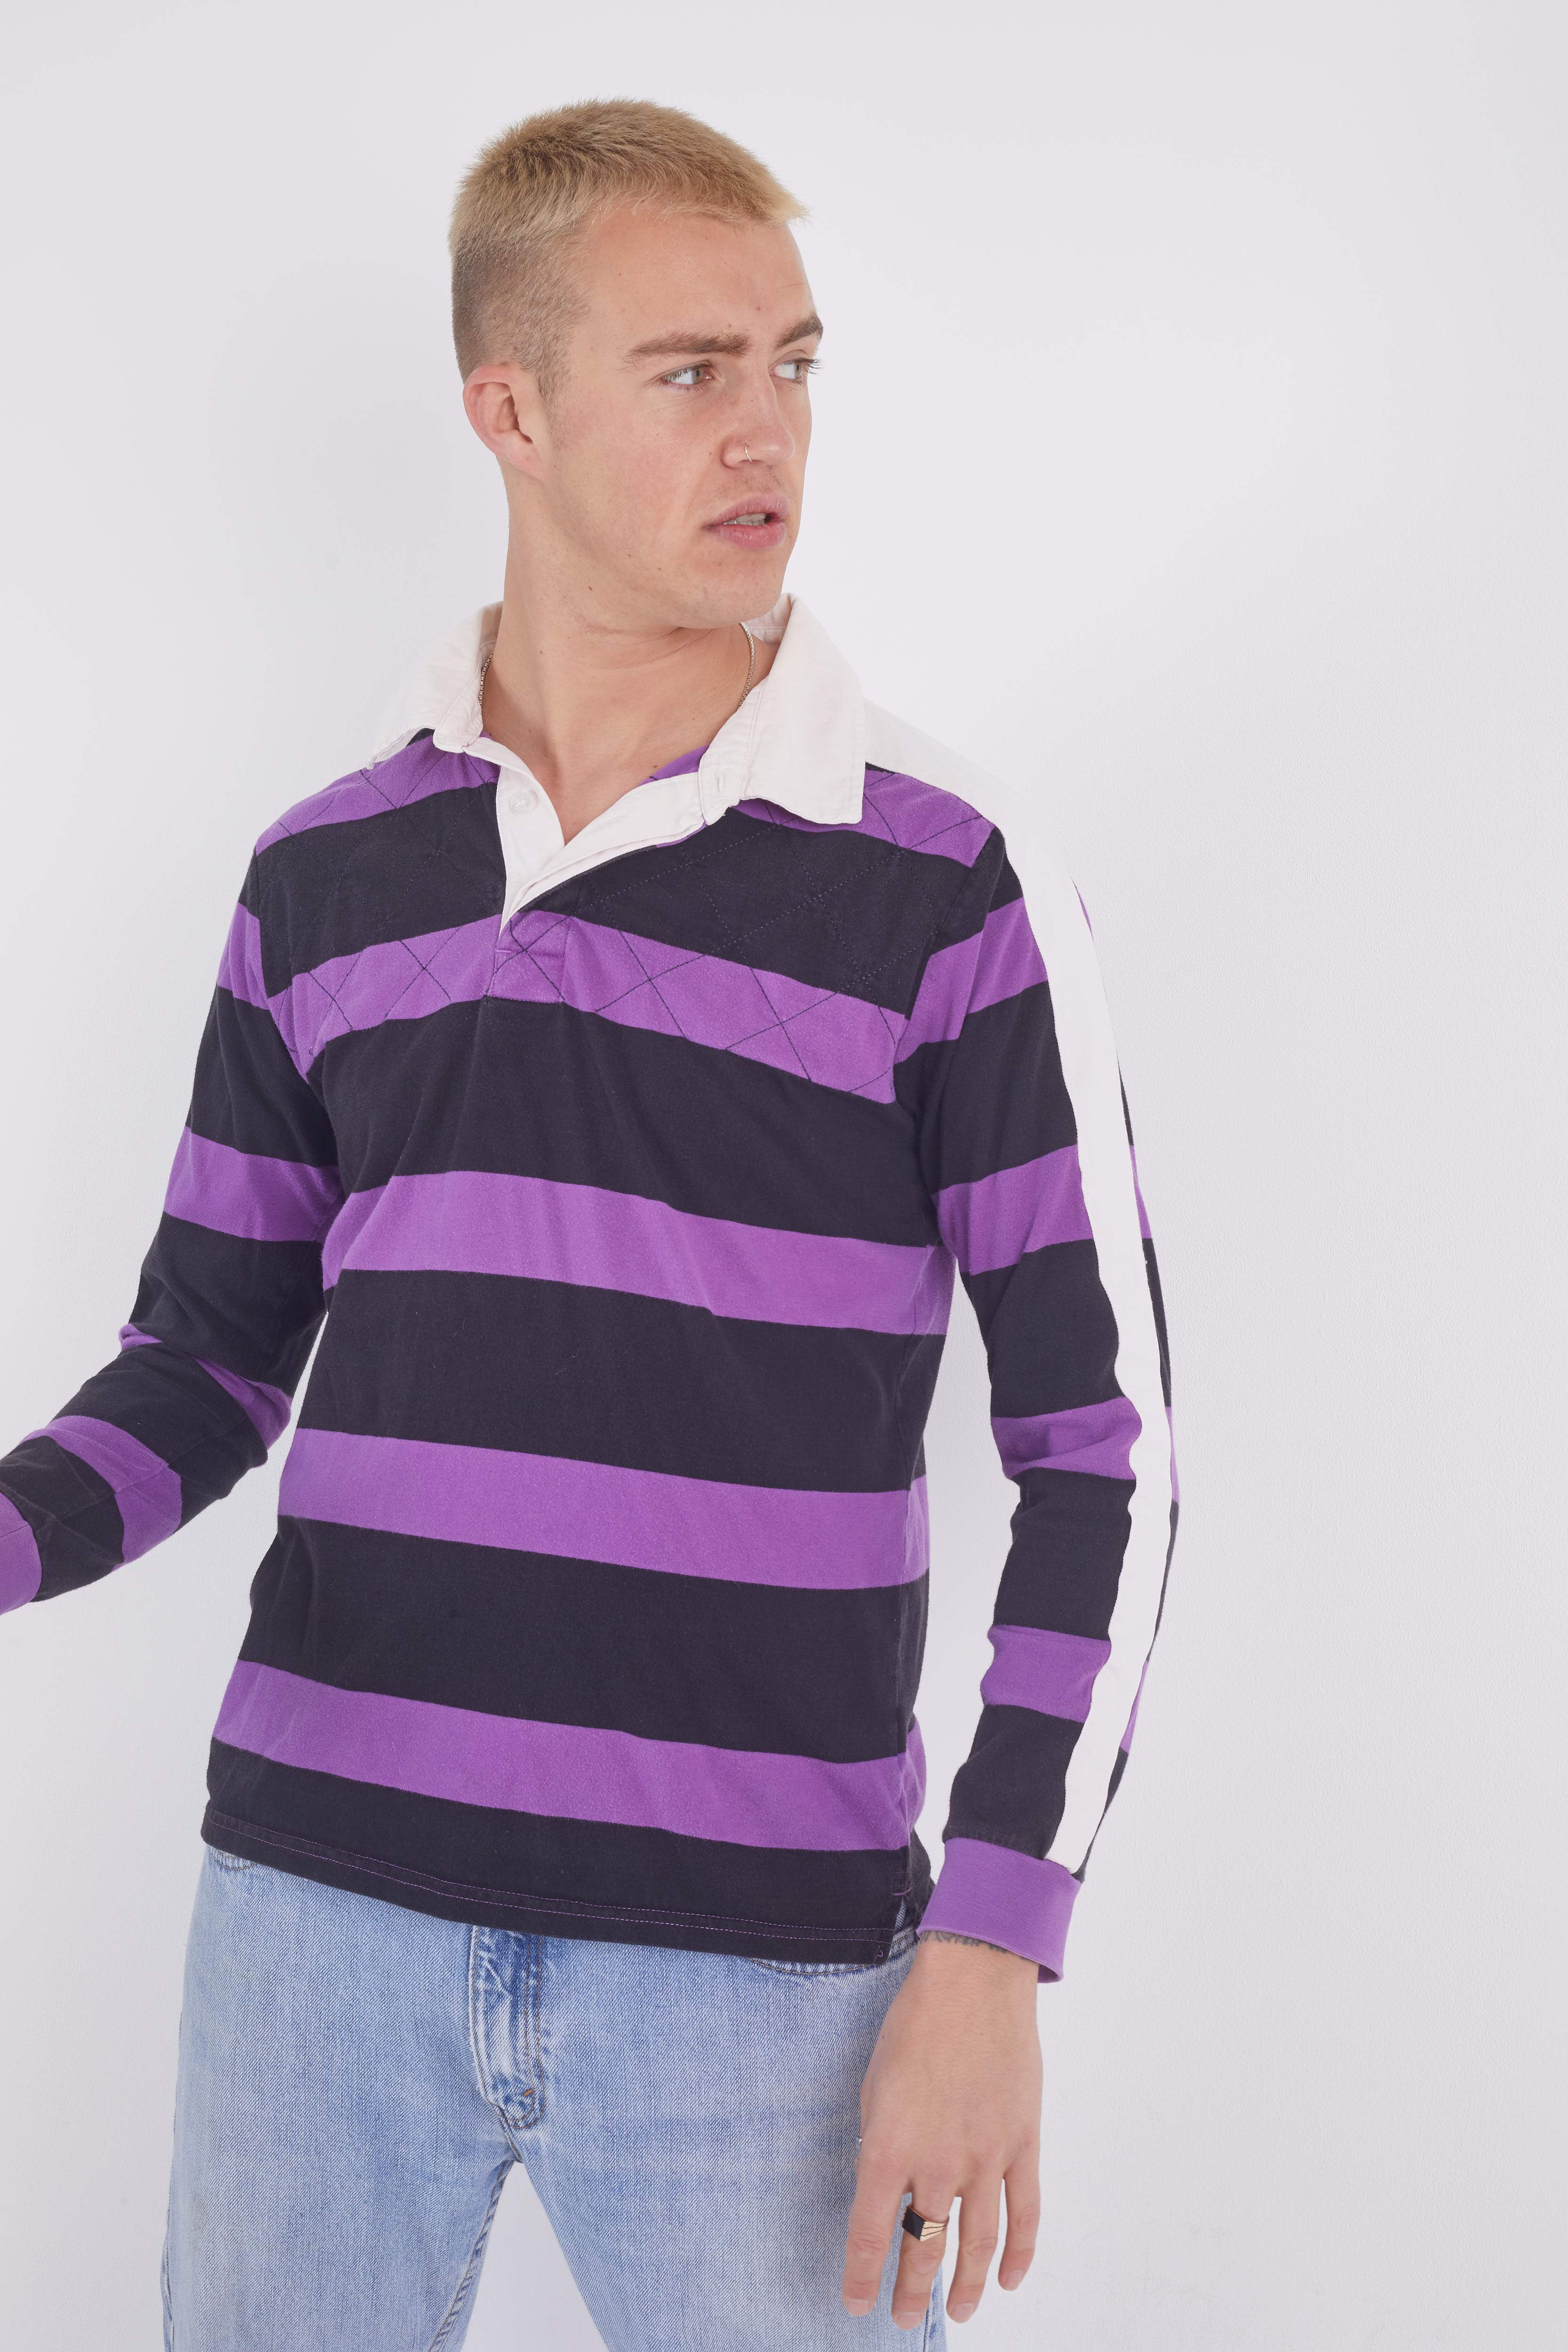 Vintage Puma Striped Rugby Top